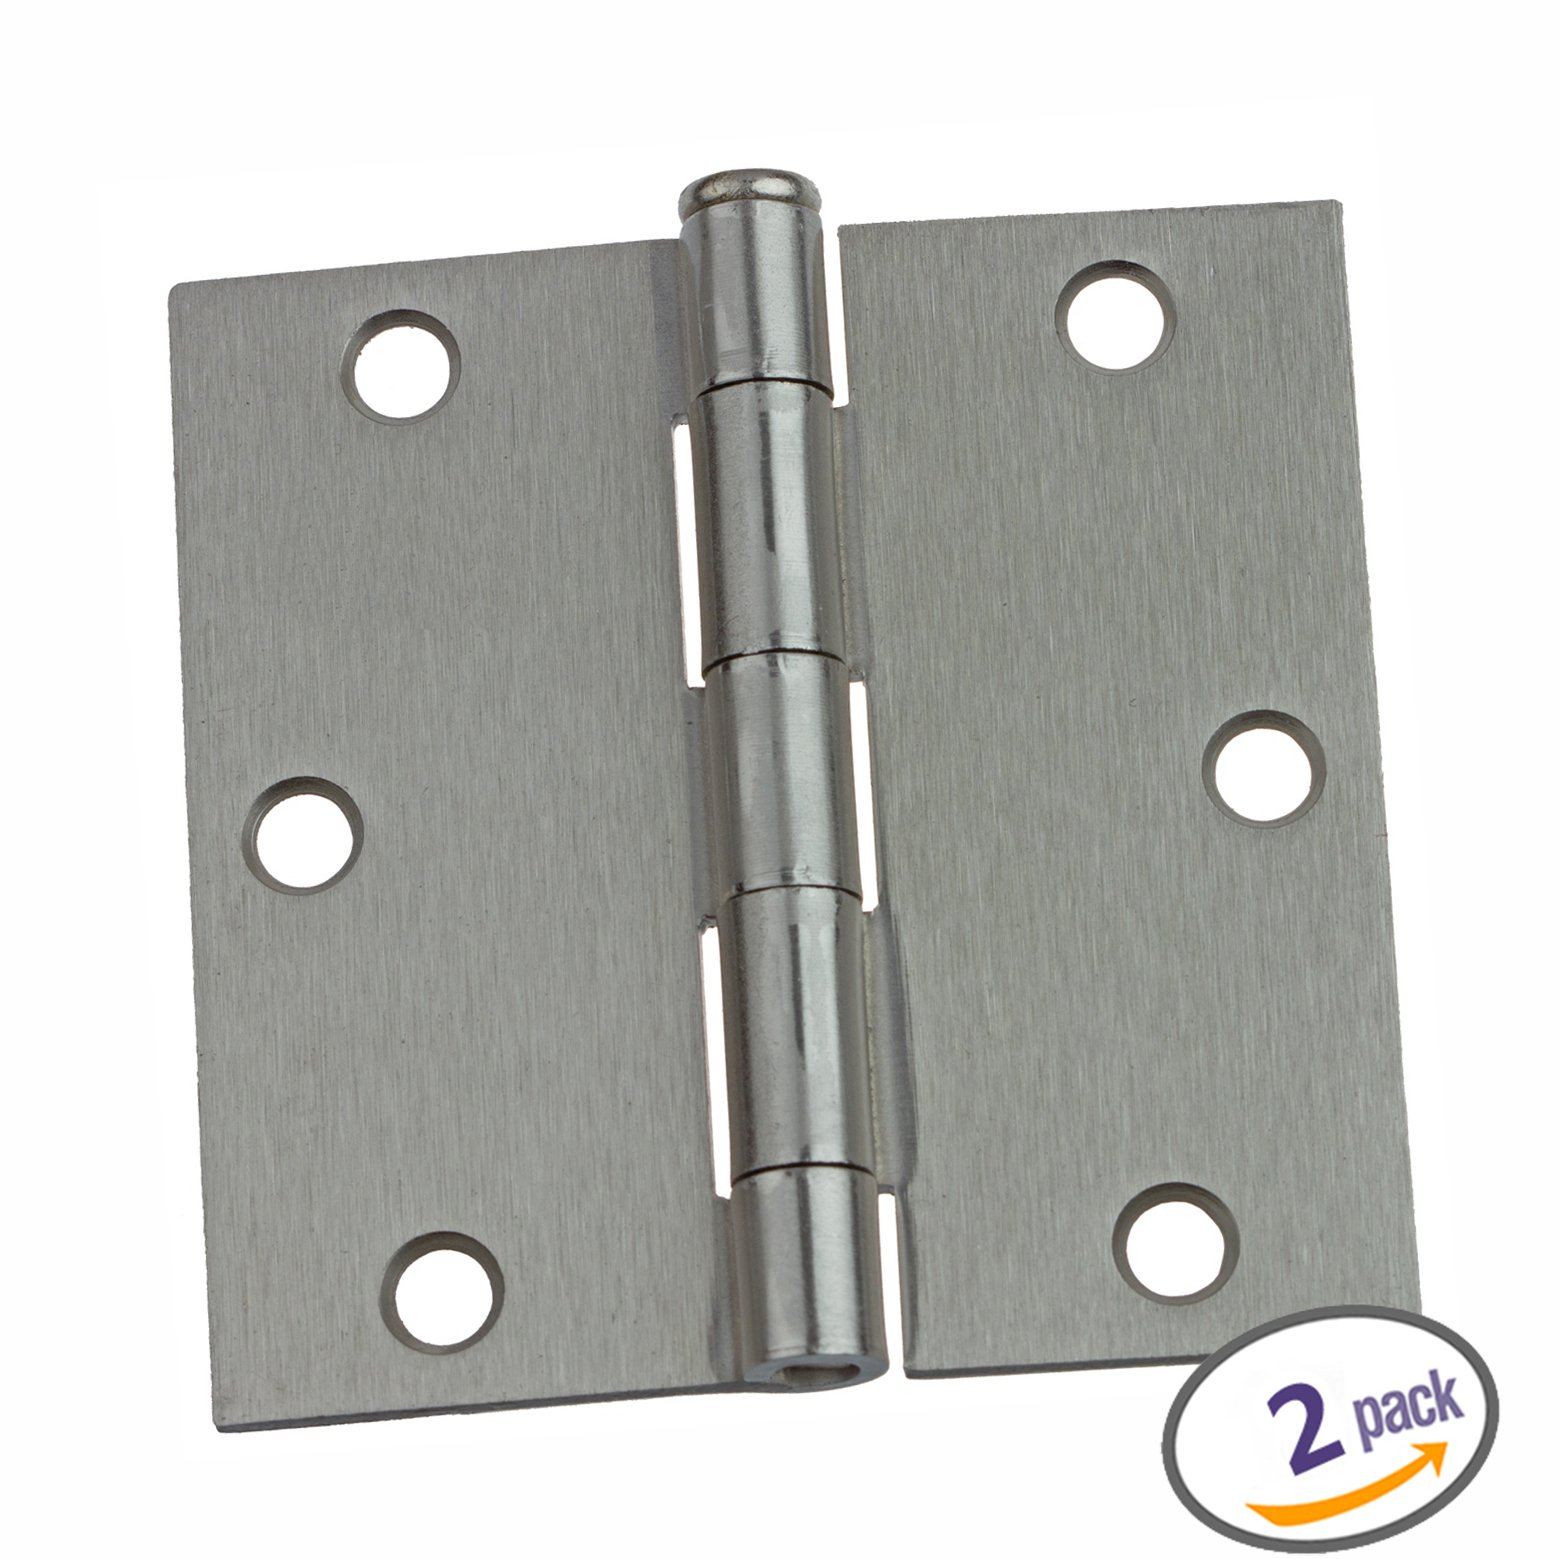 Dynasty Hardware 3-1//2 Door Hinges 1//4 Radius Corner Satin Nickel 12 Pack